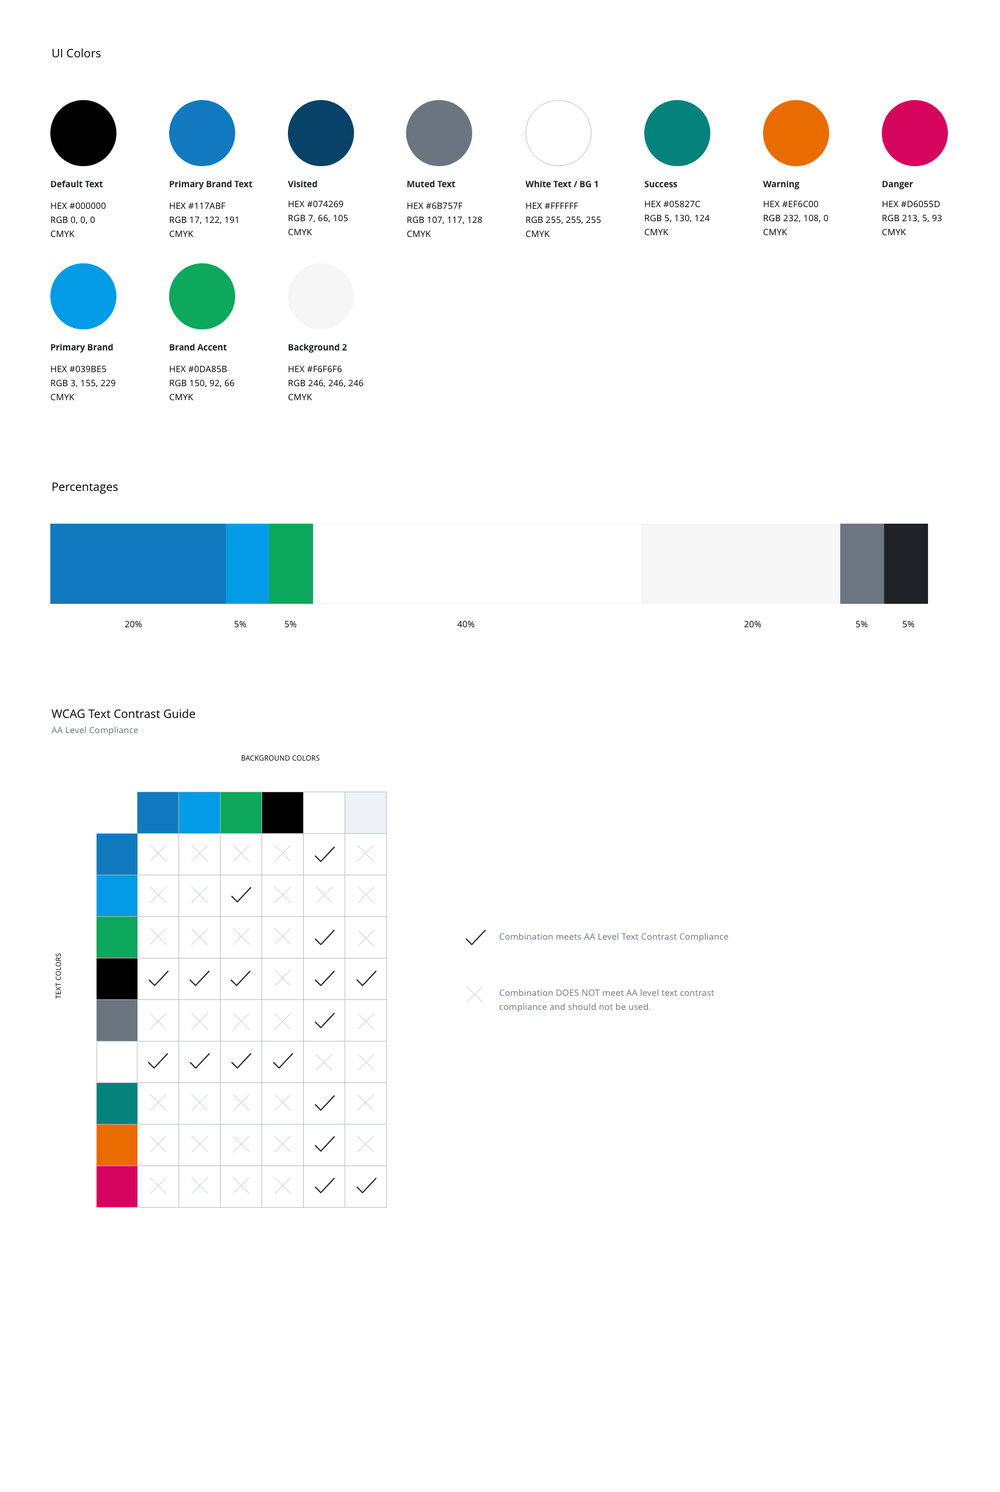 UI Color & WCAG Text Contrast Guide.jpg